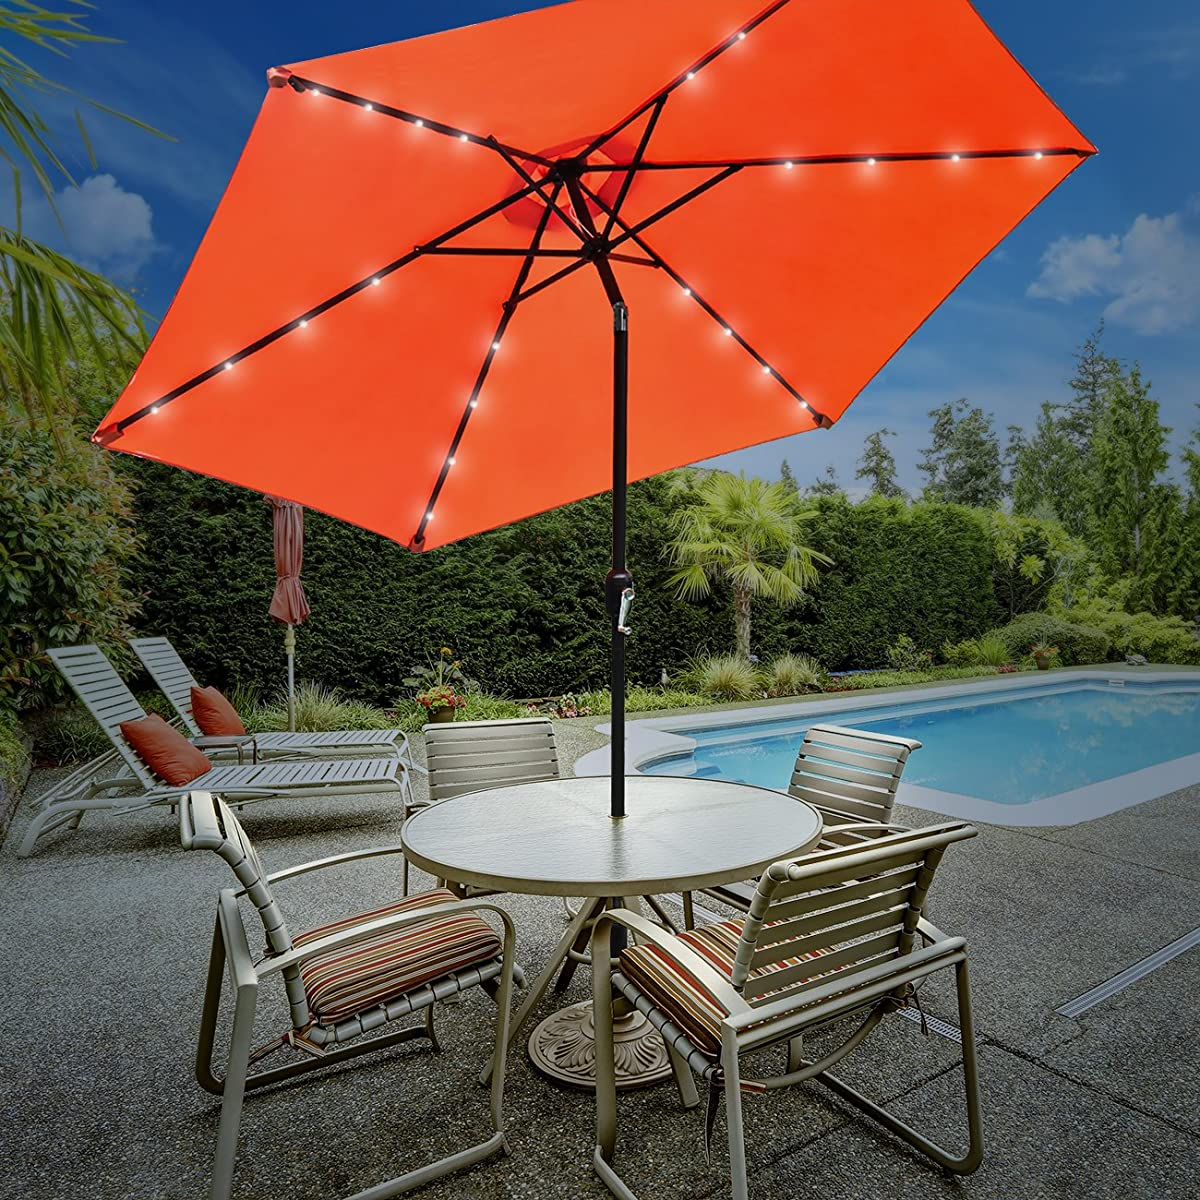 Sorbus LED Outdoor Umbrella, 10 ft Patio Umbrella LED Solar Power, with Tilt Adjustment and Crank Lift System, for Backyard, Patio, Deck, Always Close Umbrella When Not in Use (Solar LED - Orange)